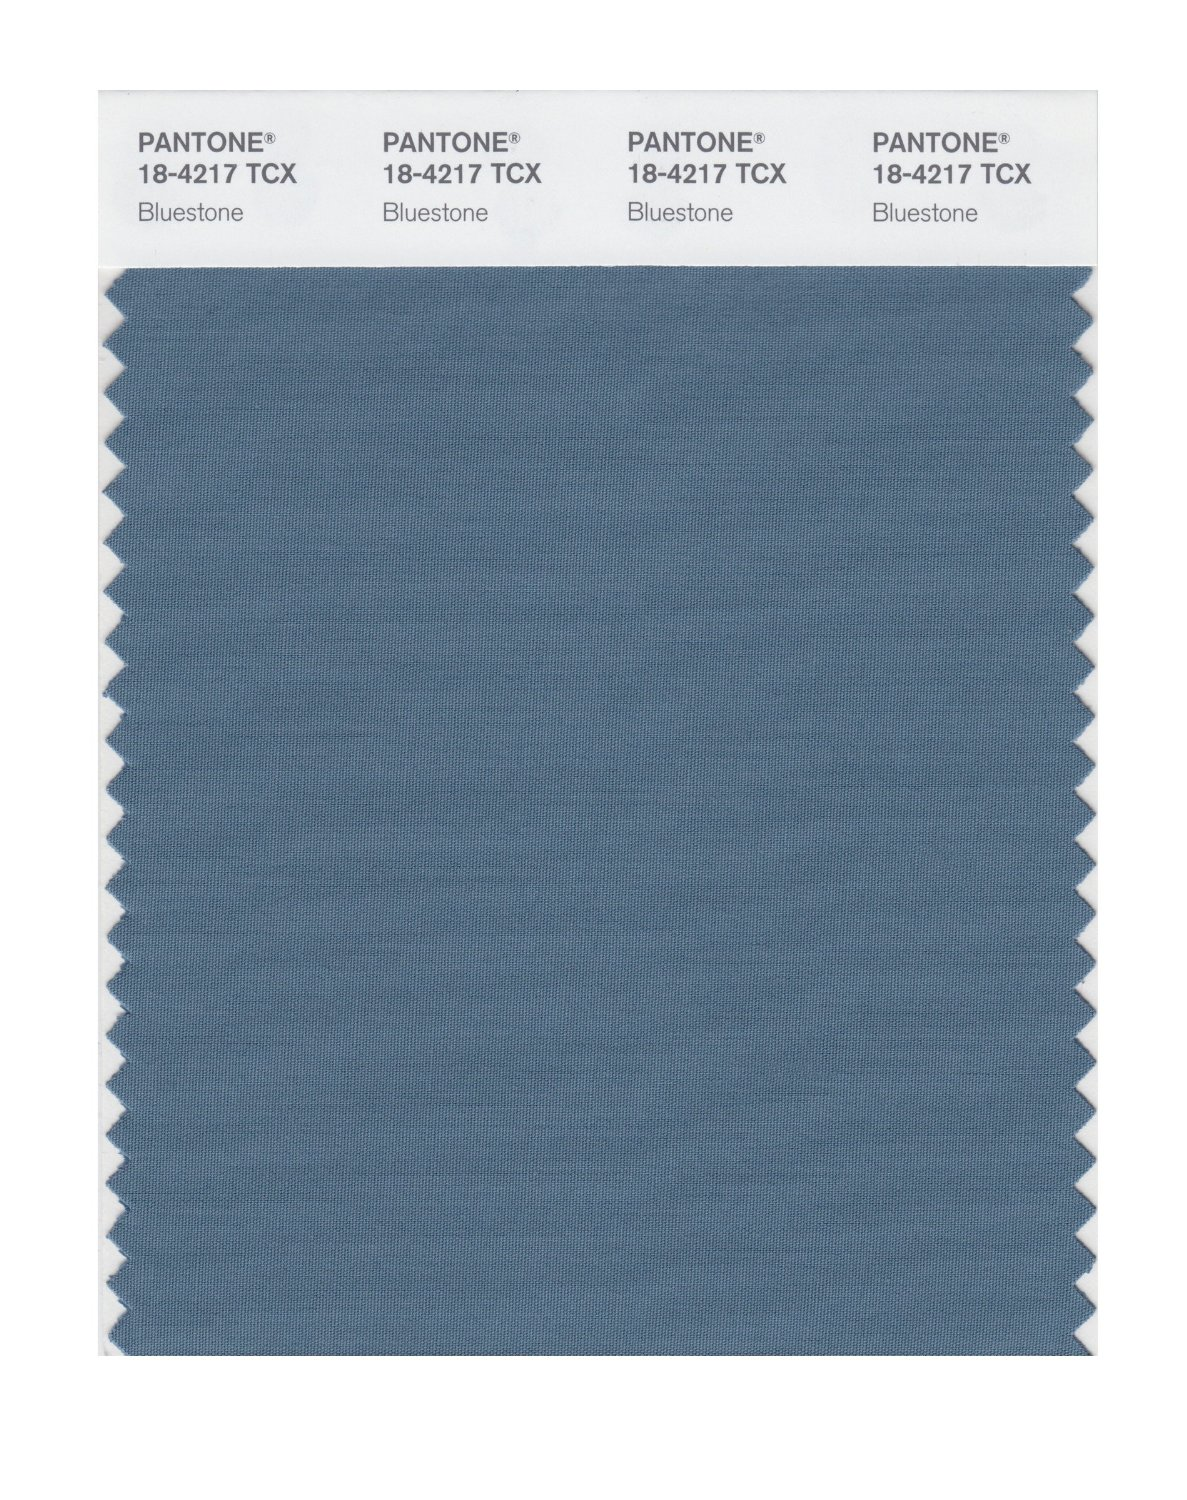 Pantone Smart Swatch 18-4217 Bluestone